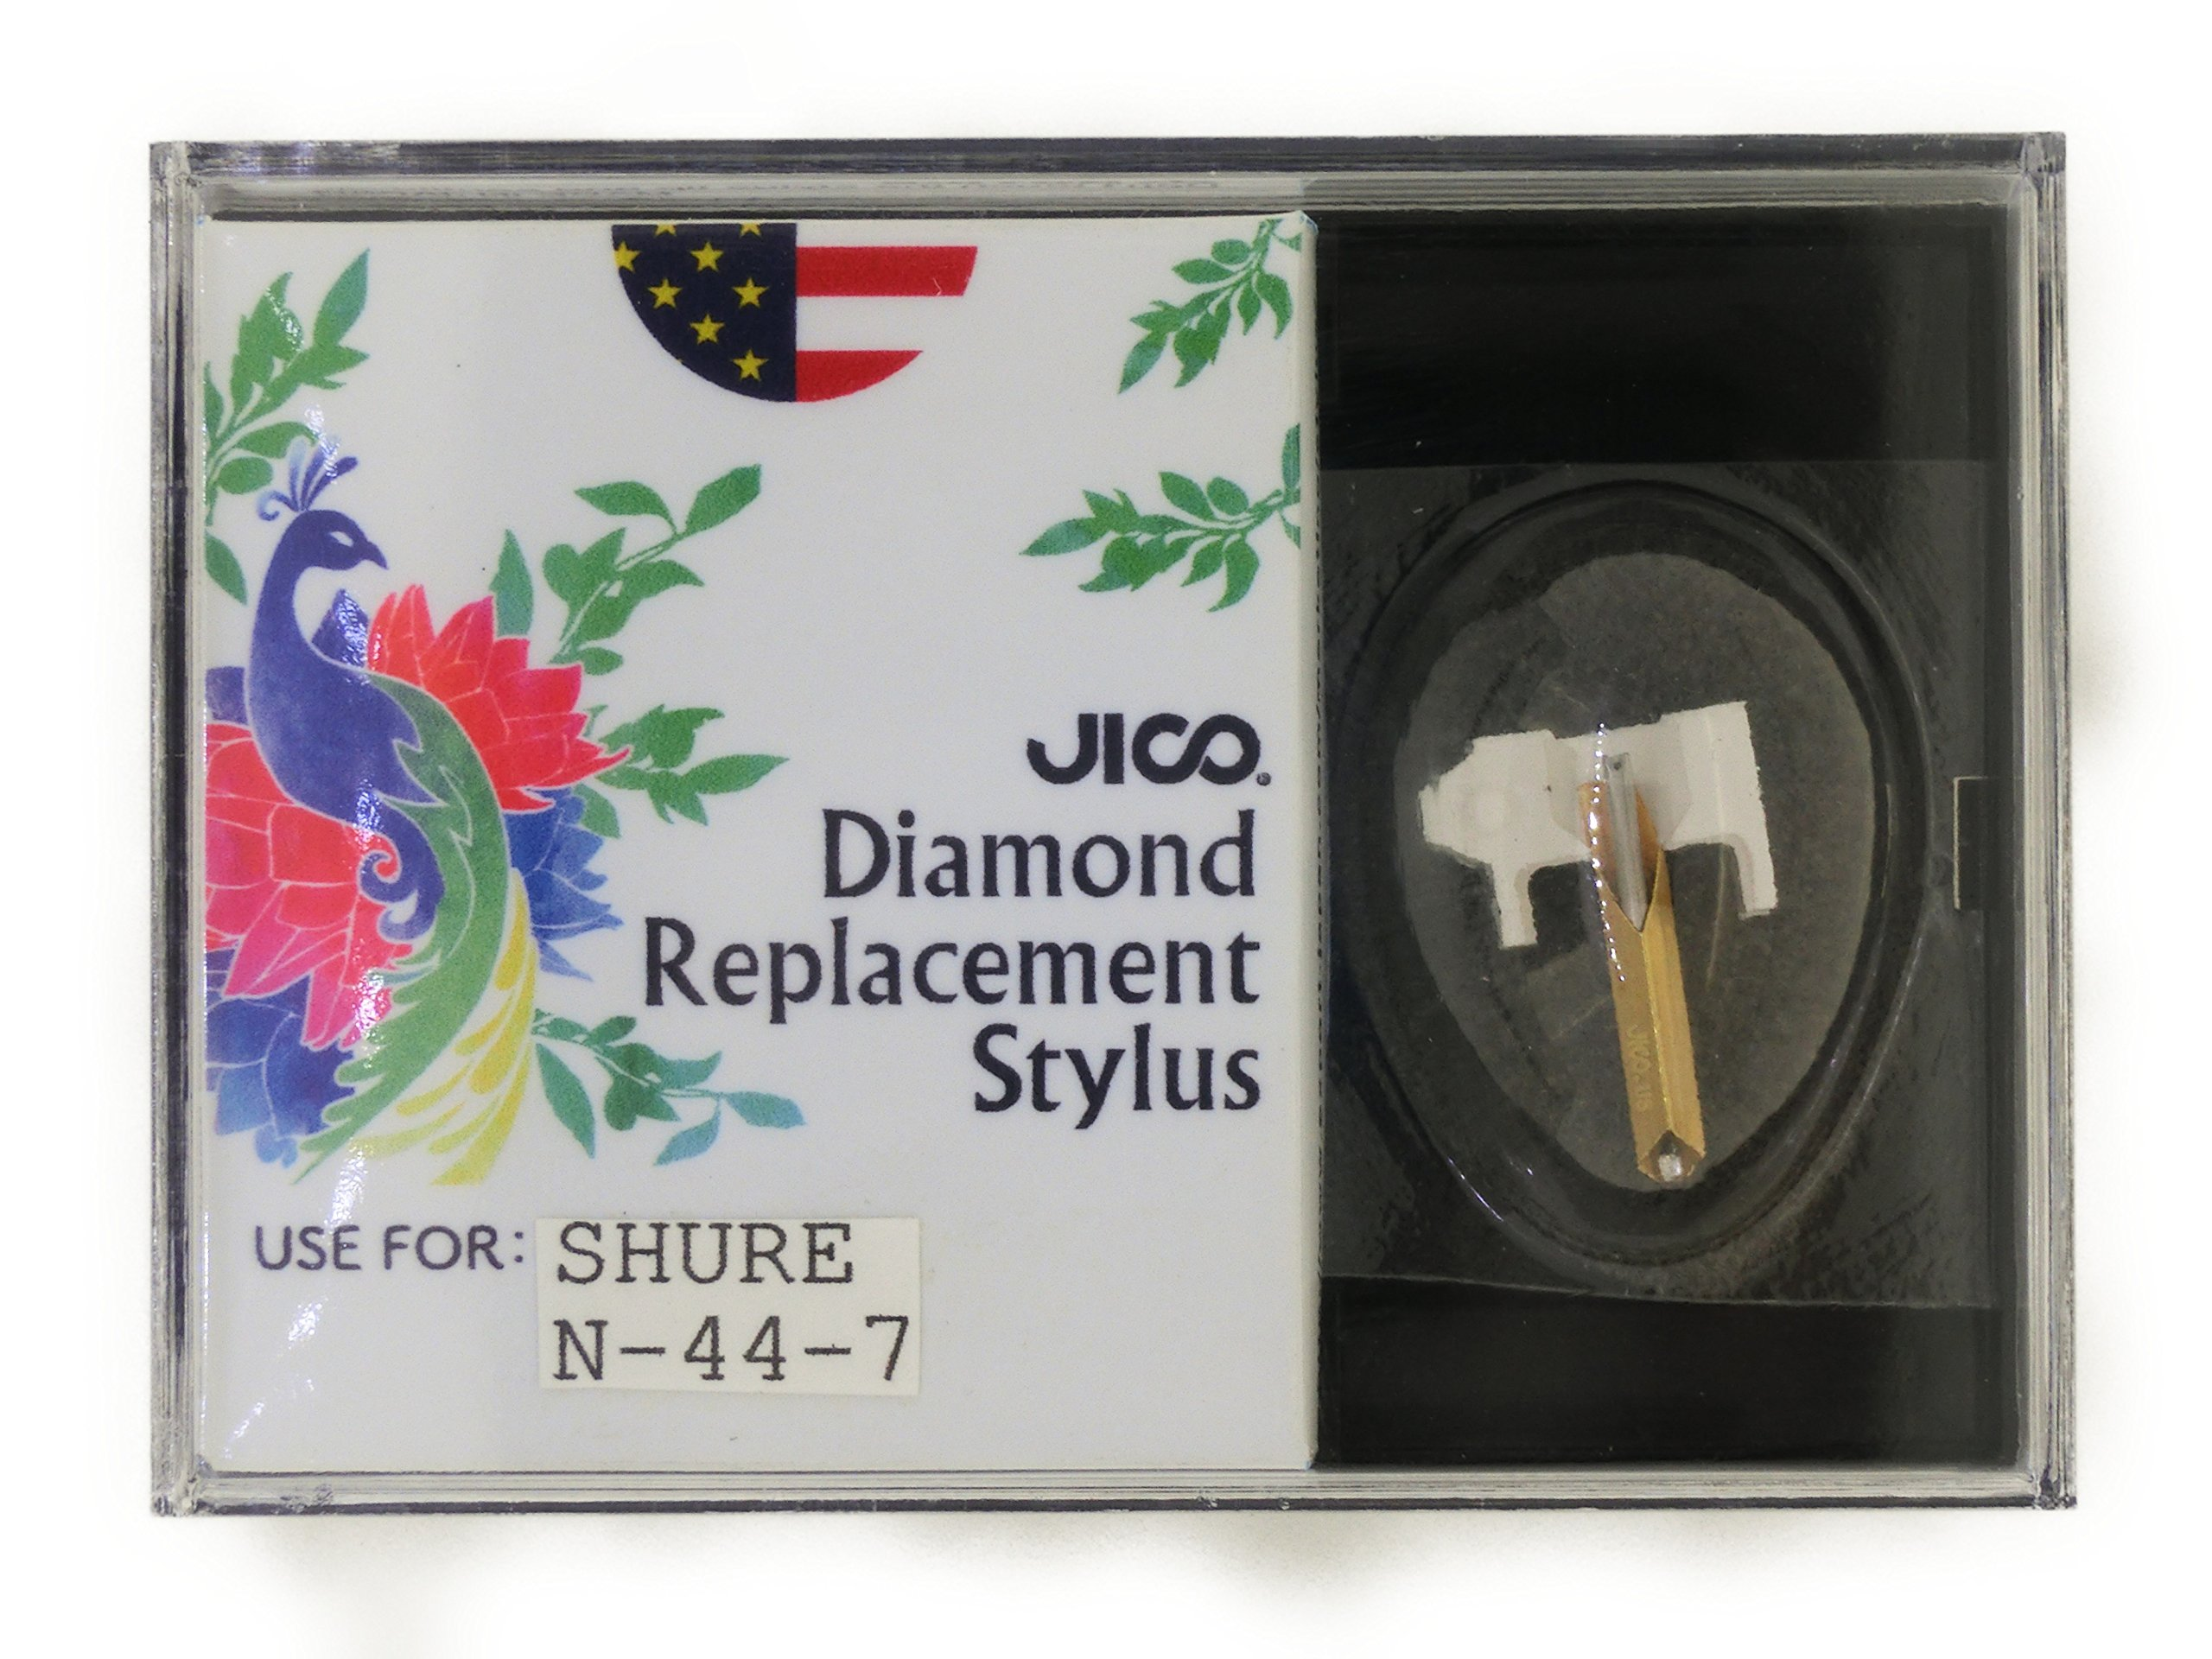 JICO 78 RPM replacement for Shure N-44-7 N44-7 stylus by Jico (Image #3)